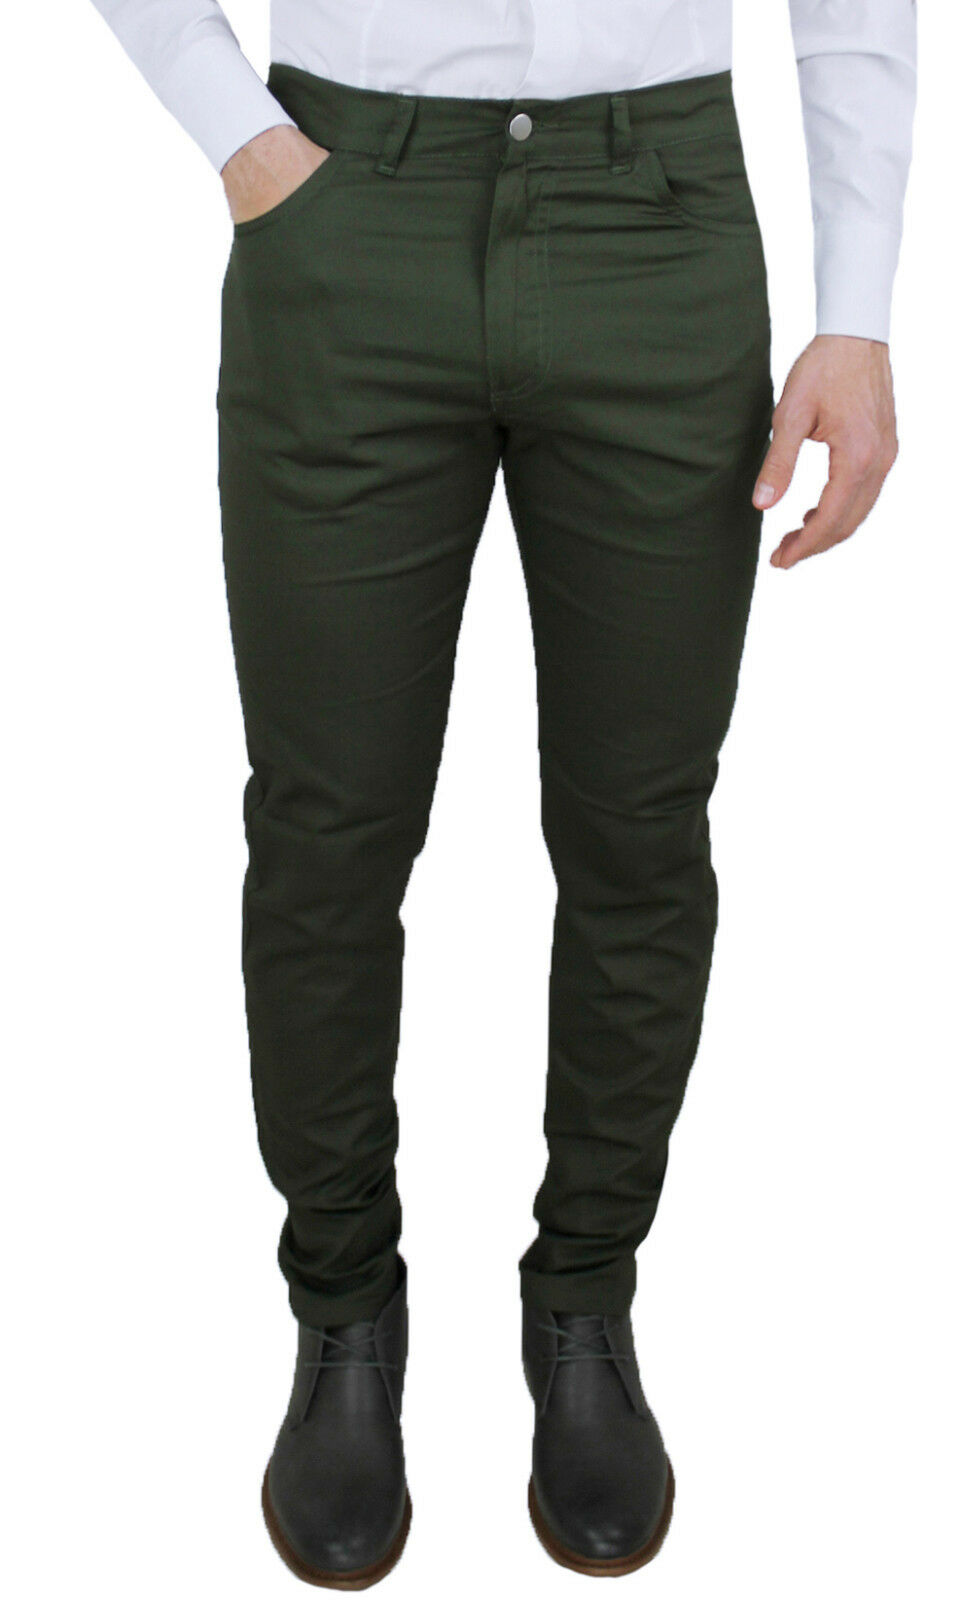 MEN'S TROUSERS CRISTIANO BATTISTINI MADE IN ITALY MILITARY GREEN CASUAL JEANS